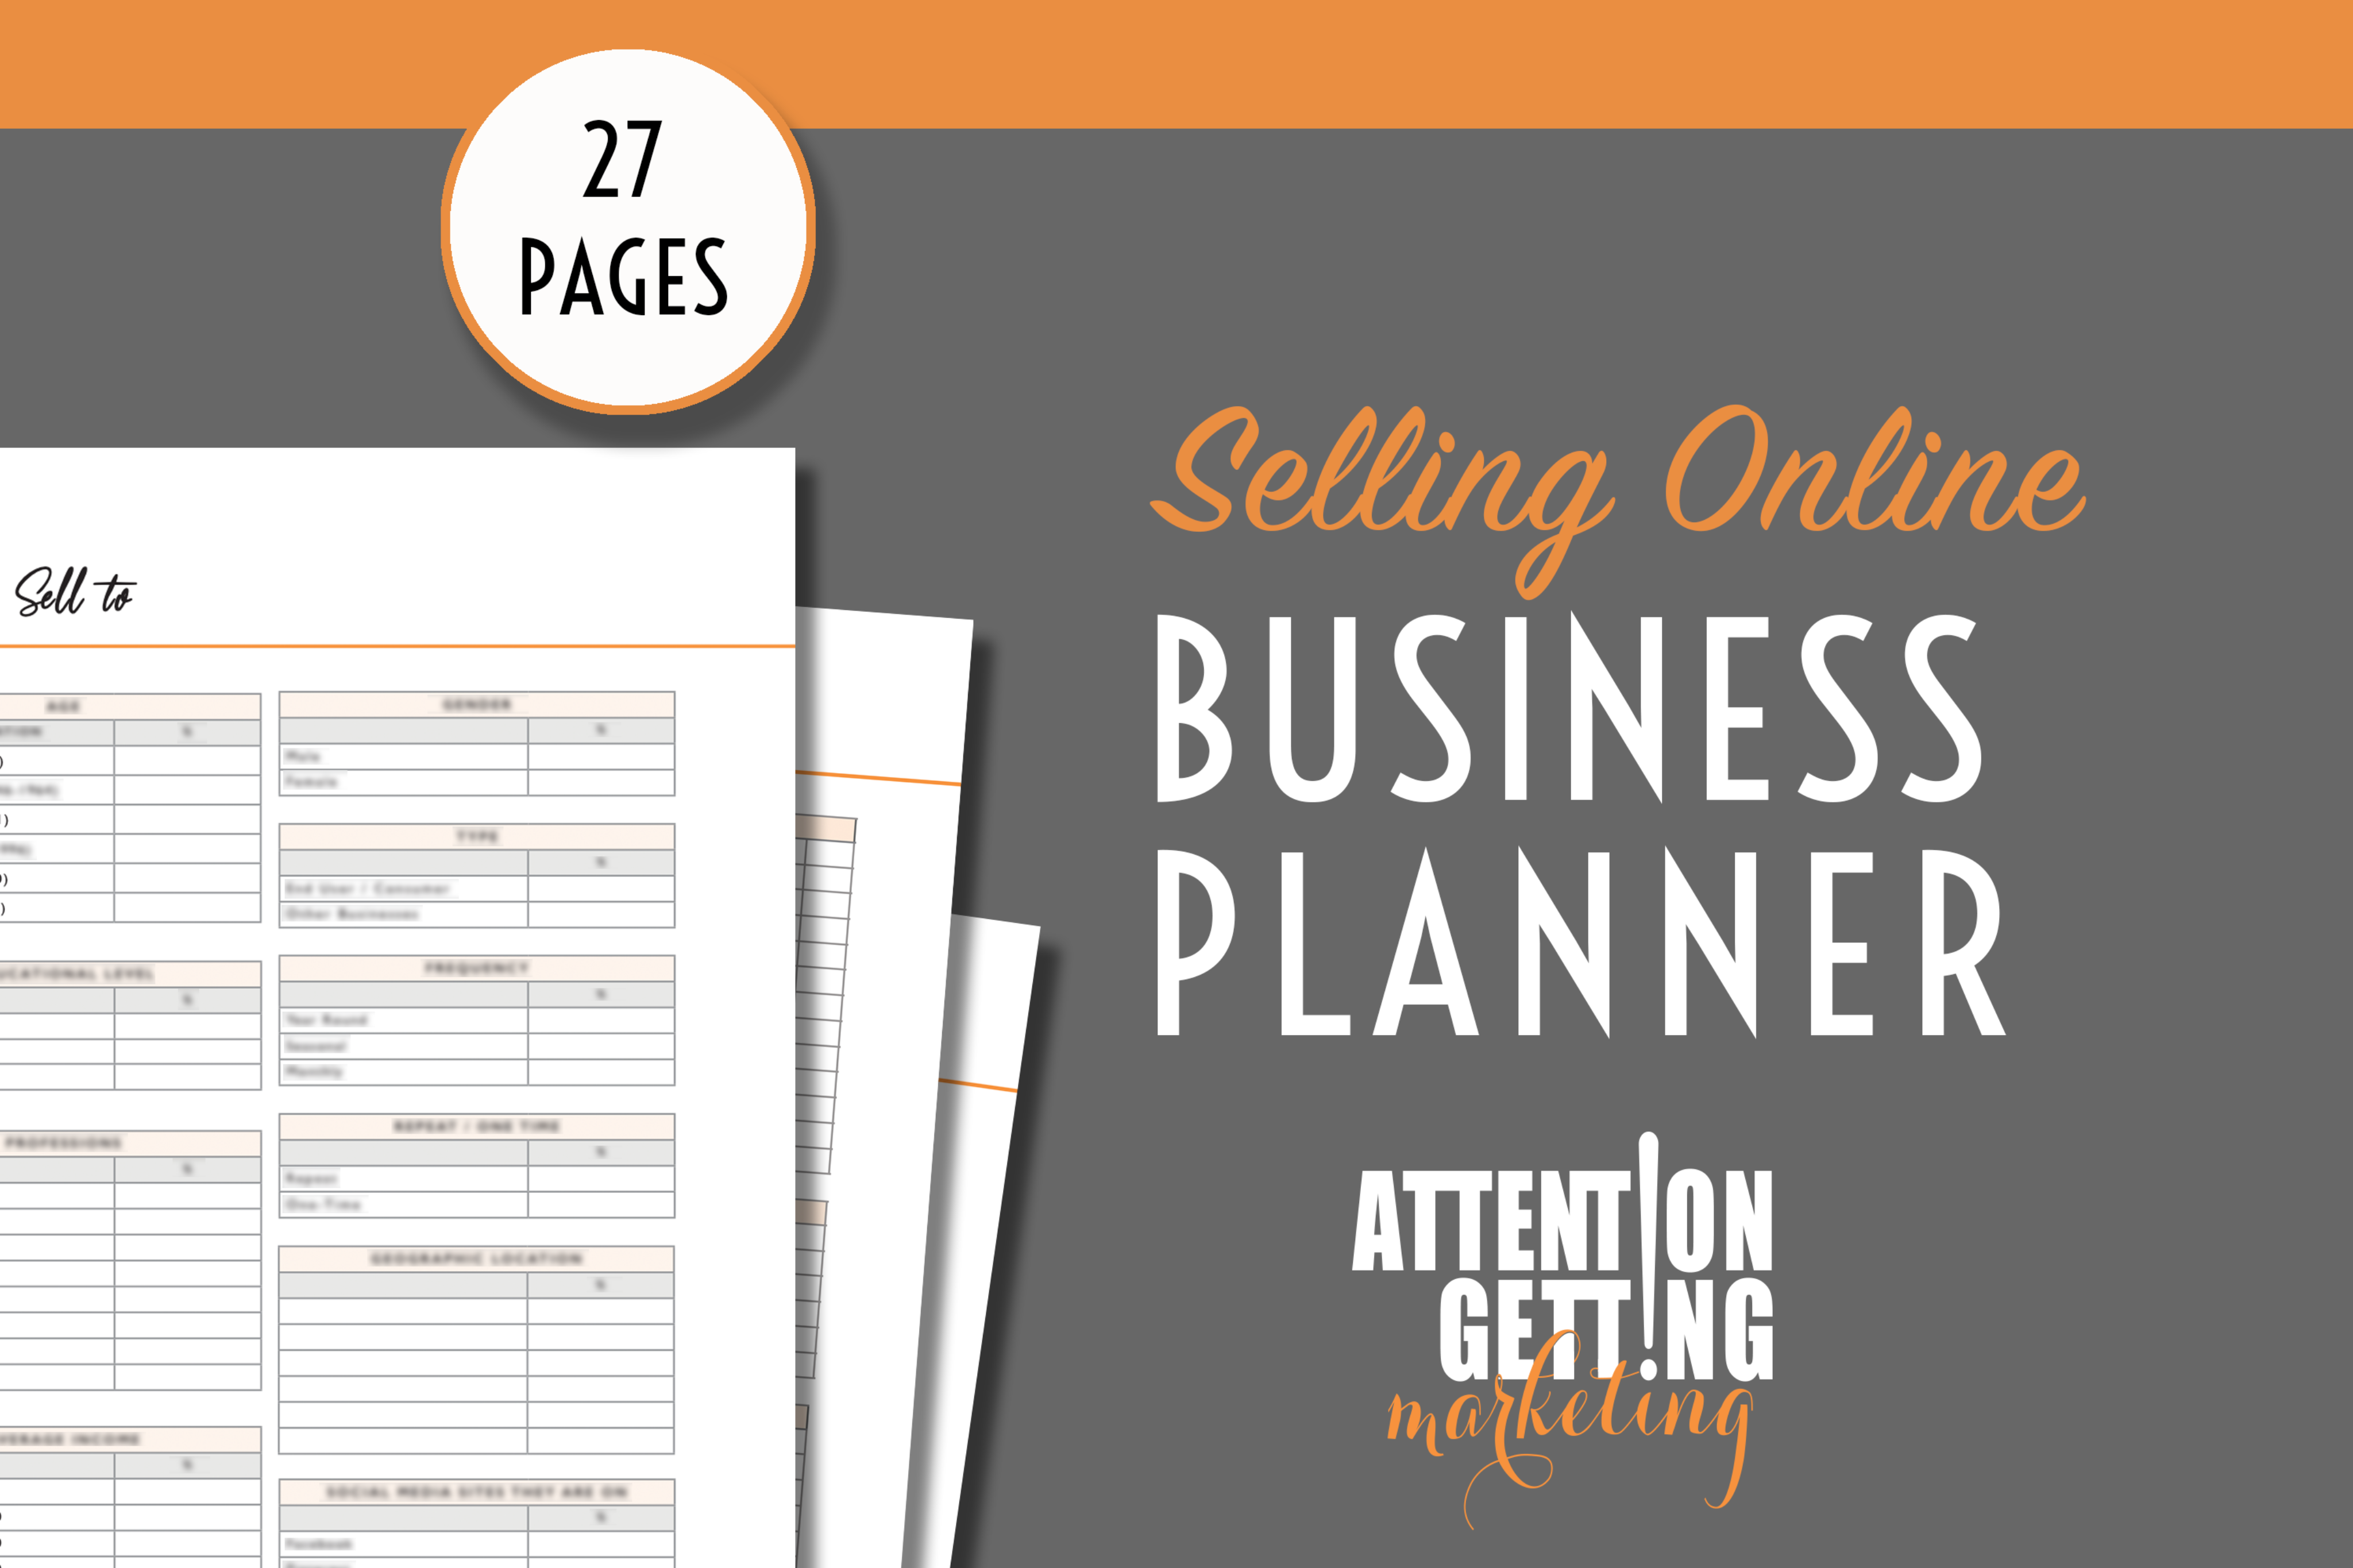 How to Start Selling Online Planner